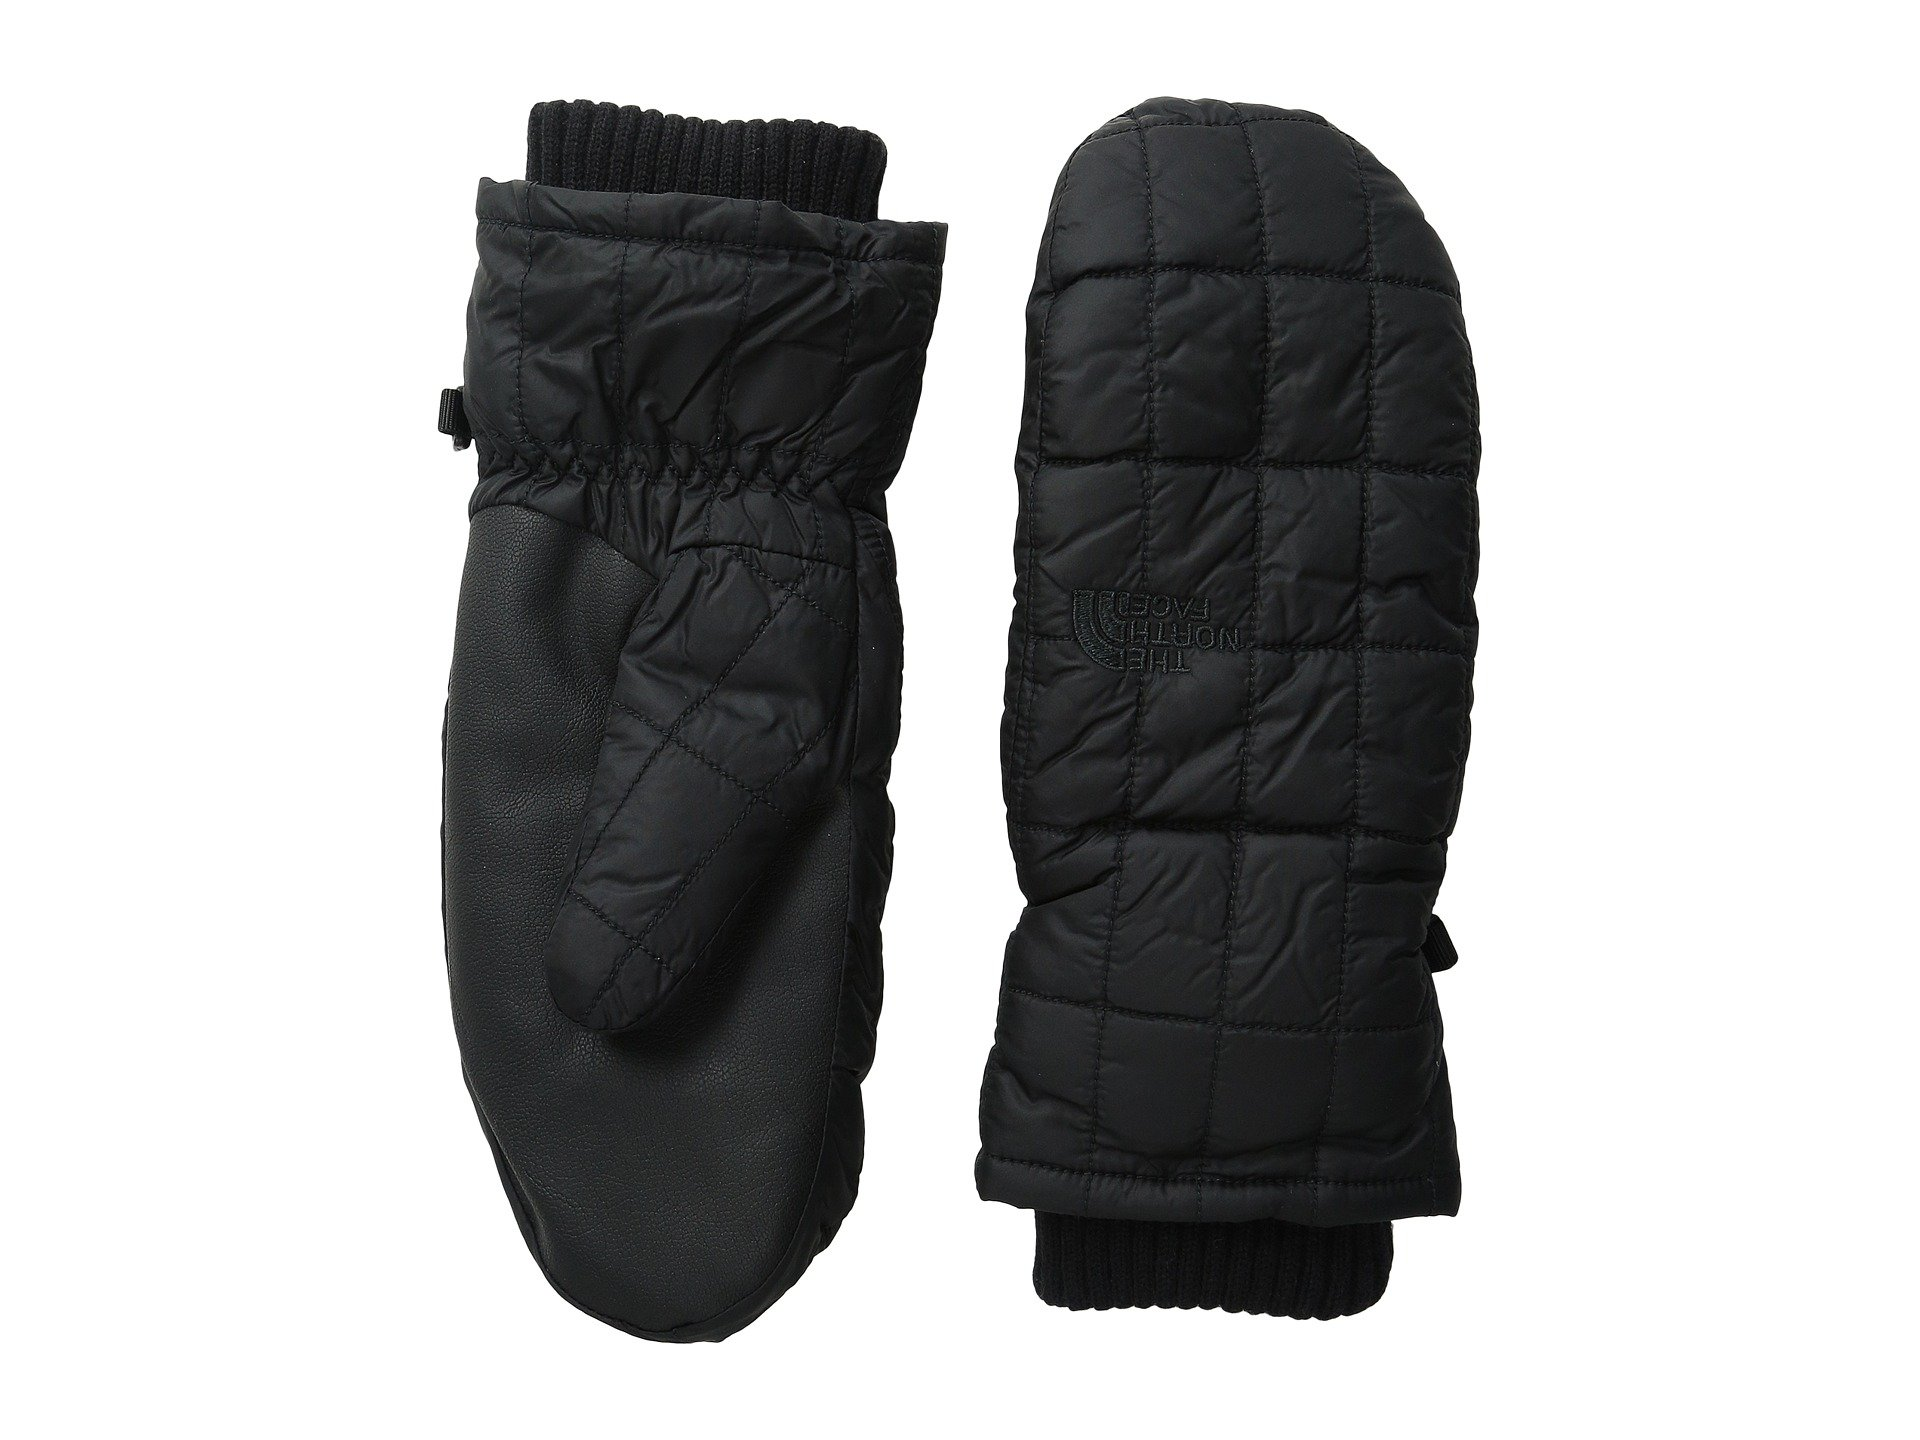 The North Face Womens Faux Leather Trim Knit Cuff Mittens Black XS by The North Face